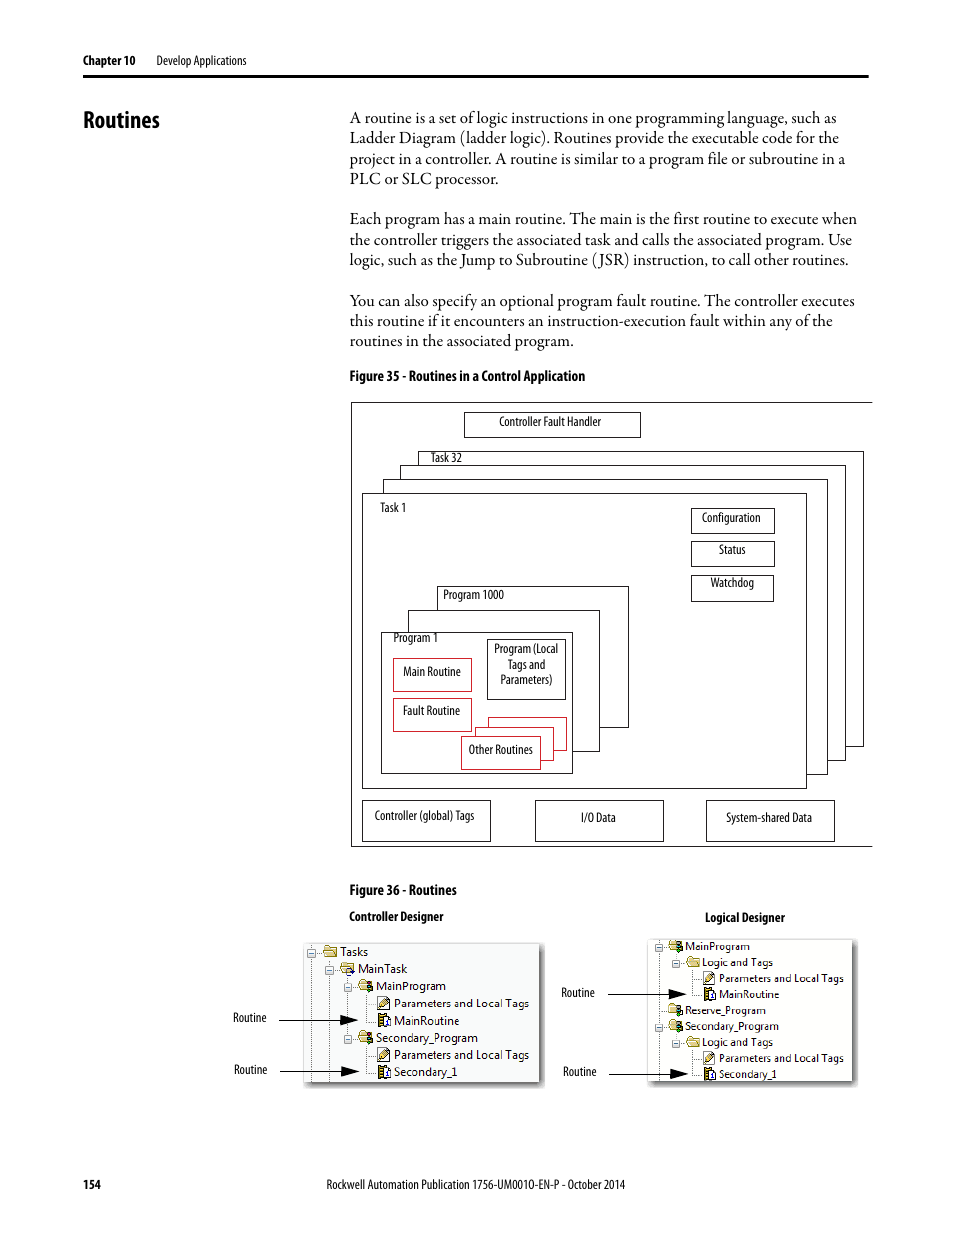 Routines Rockwell Automation 1756 L6x L7x Controllogix System User Logic Diagram Manual Page 154 212